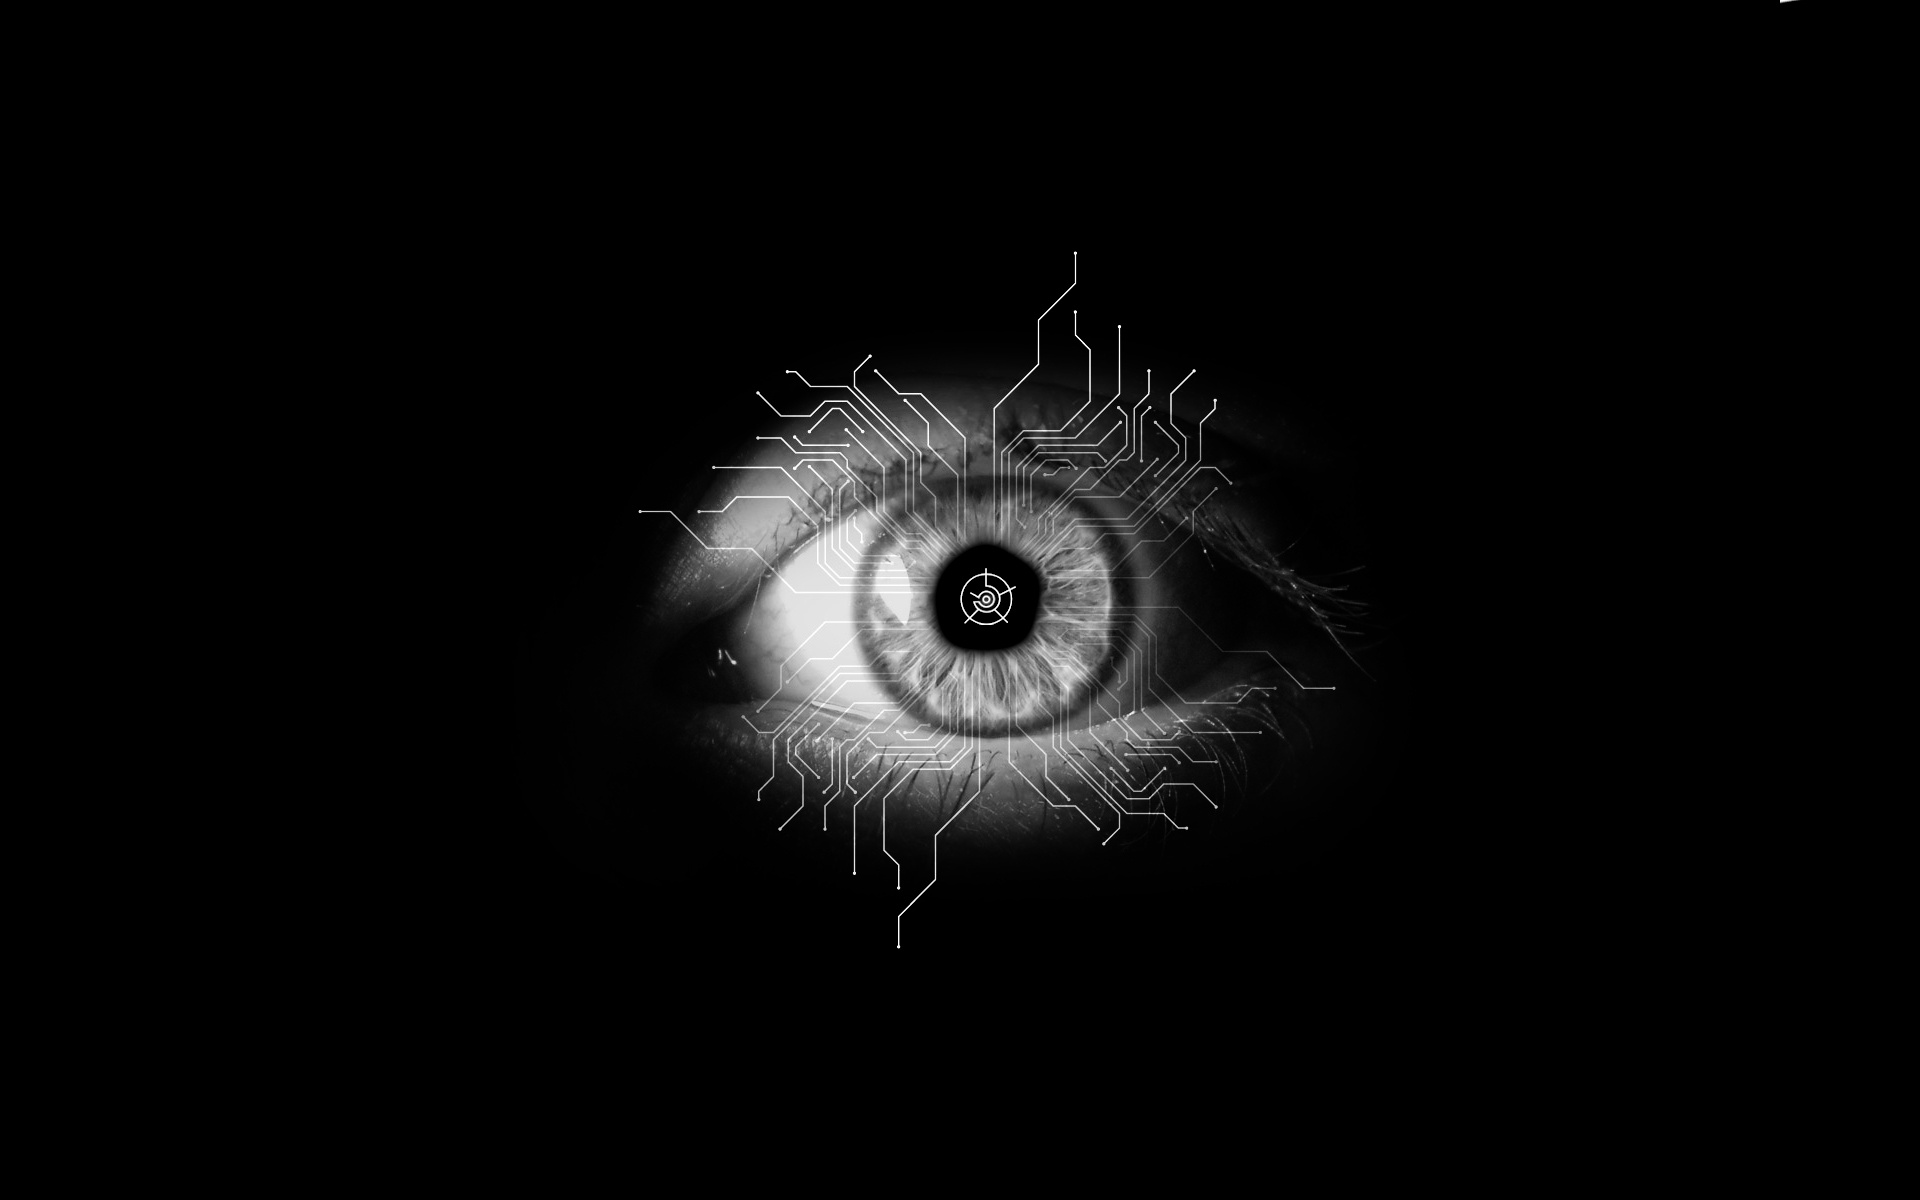 the eye wallpaper #6